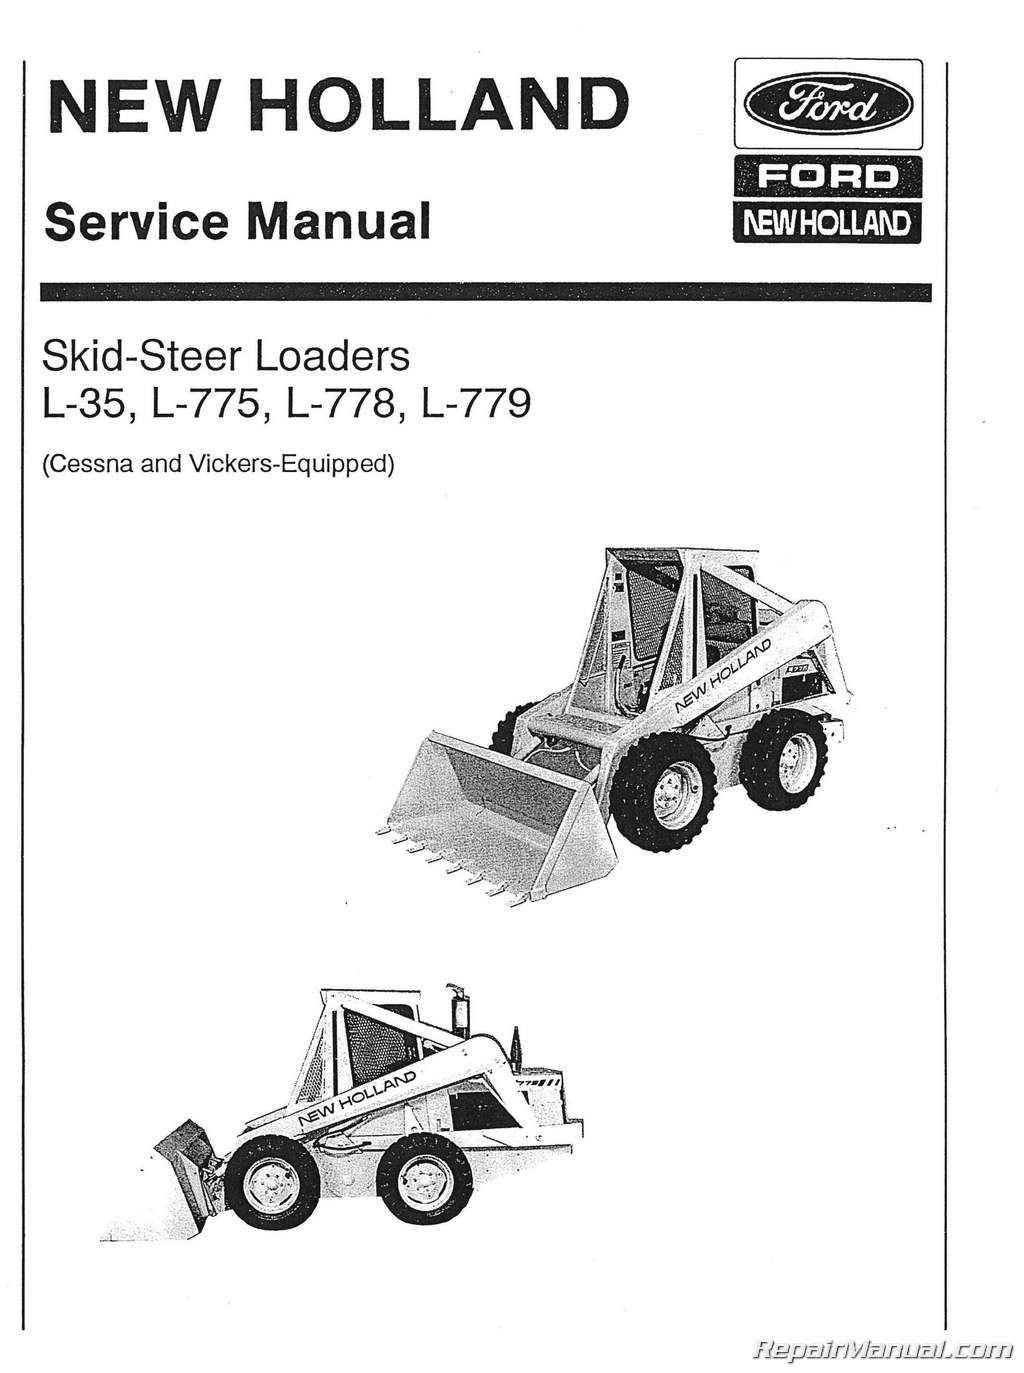 New Holland Skid Steer Parts Diagram New Holland 775 Skid Steer Parts Diagram Wiring Diagram